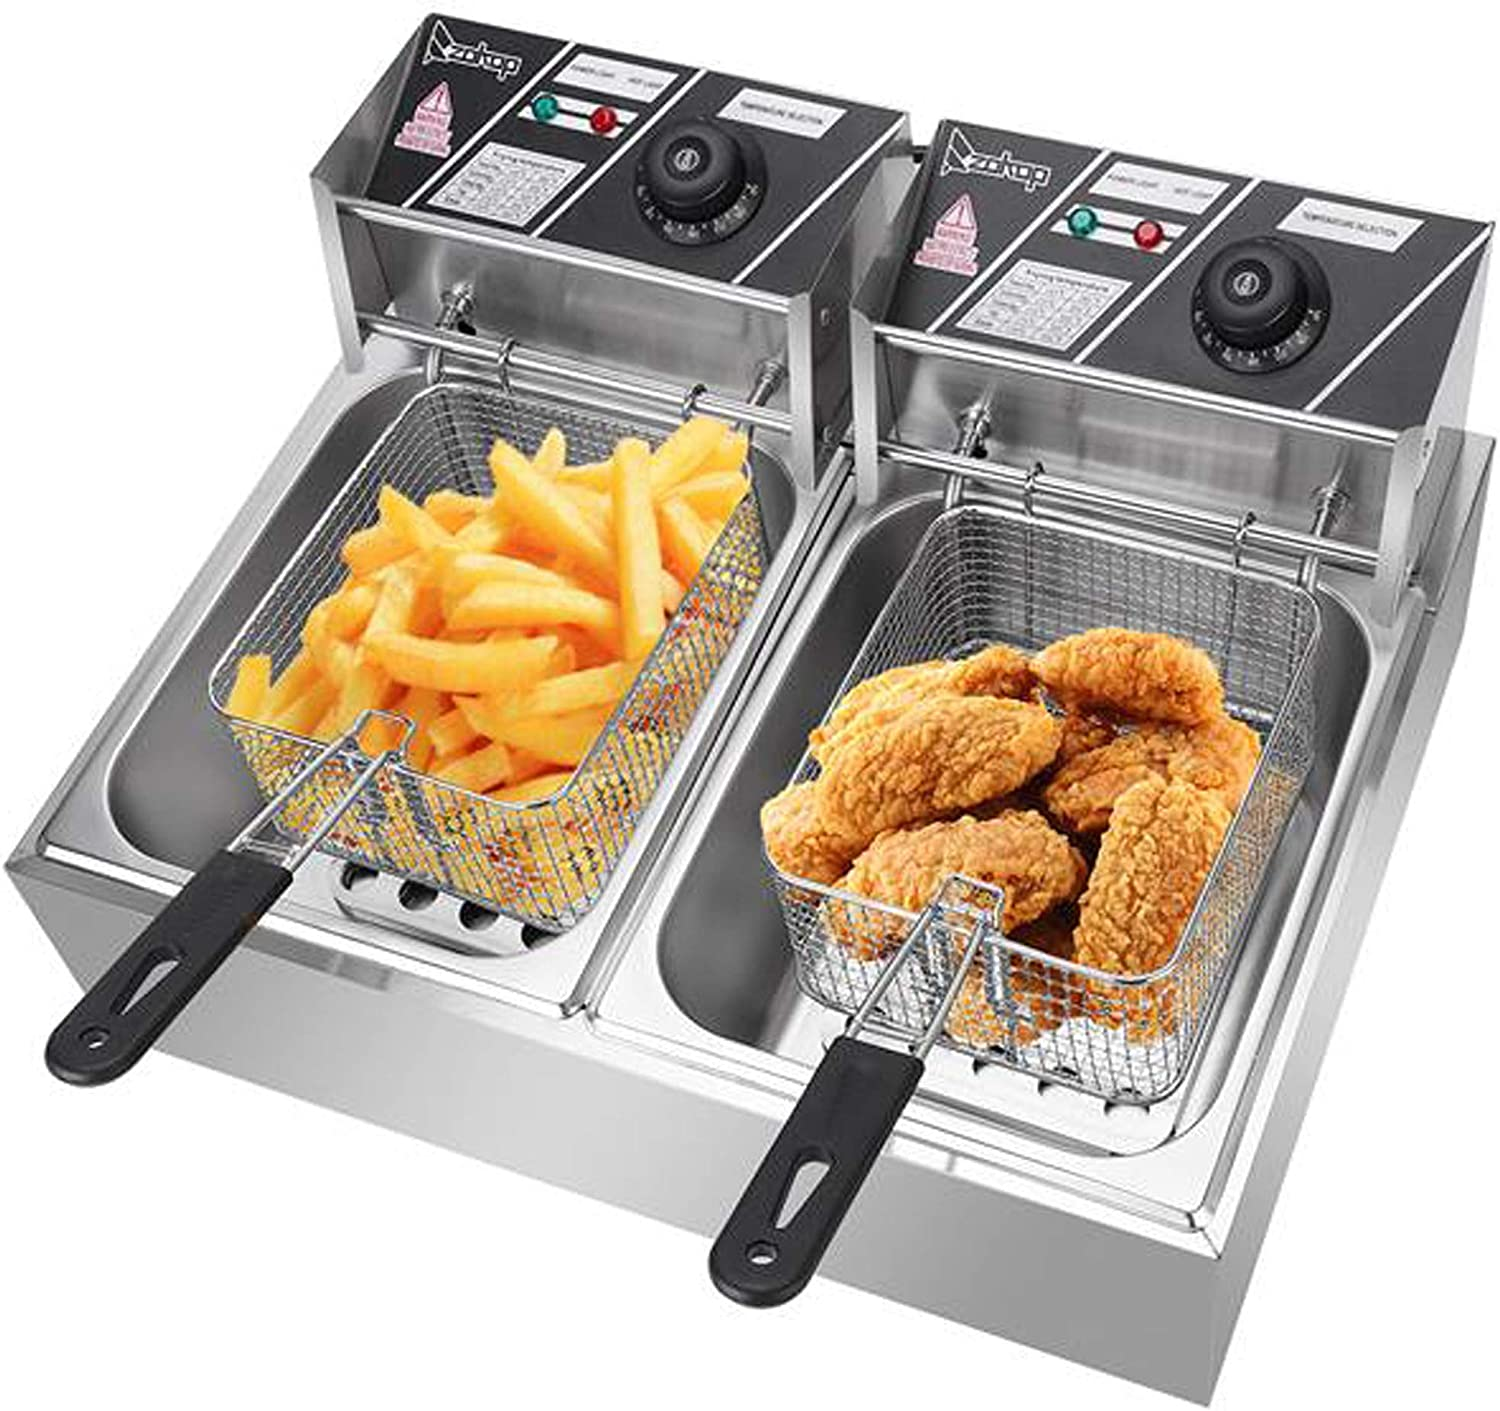 Lucakuins 2500W Countertop Deep Fryer, 12L Electric Double Tanks Deep Fryer with Baskets for Turkey French Fries, Stainless Steel Oil Fryer Commercial Deep Fat Fryer for Restaurant Home Kitchen